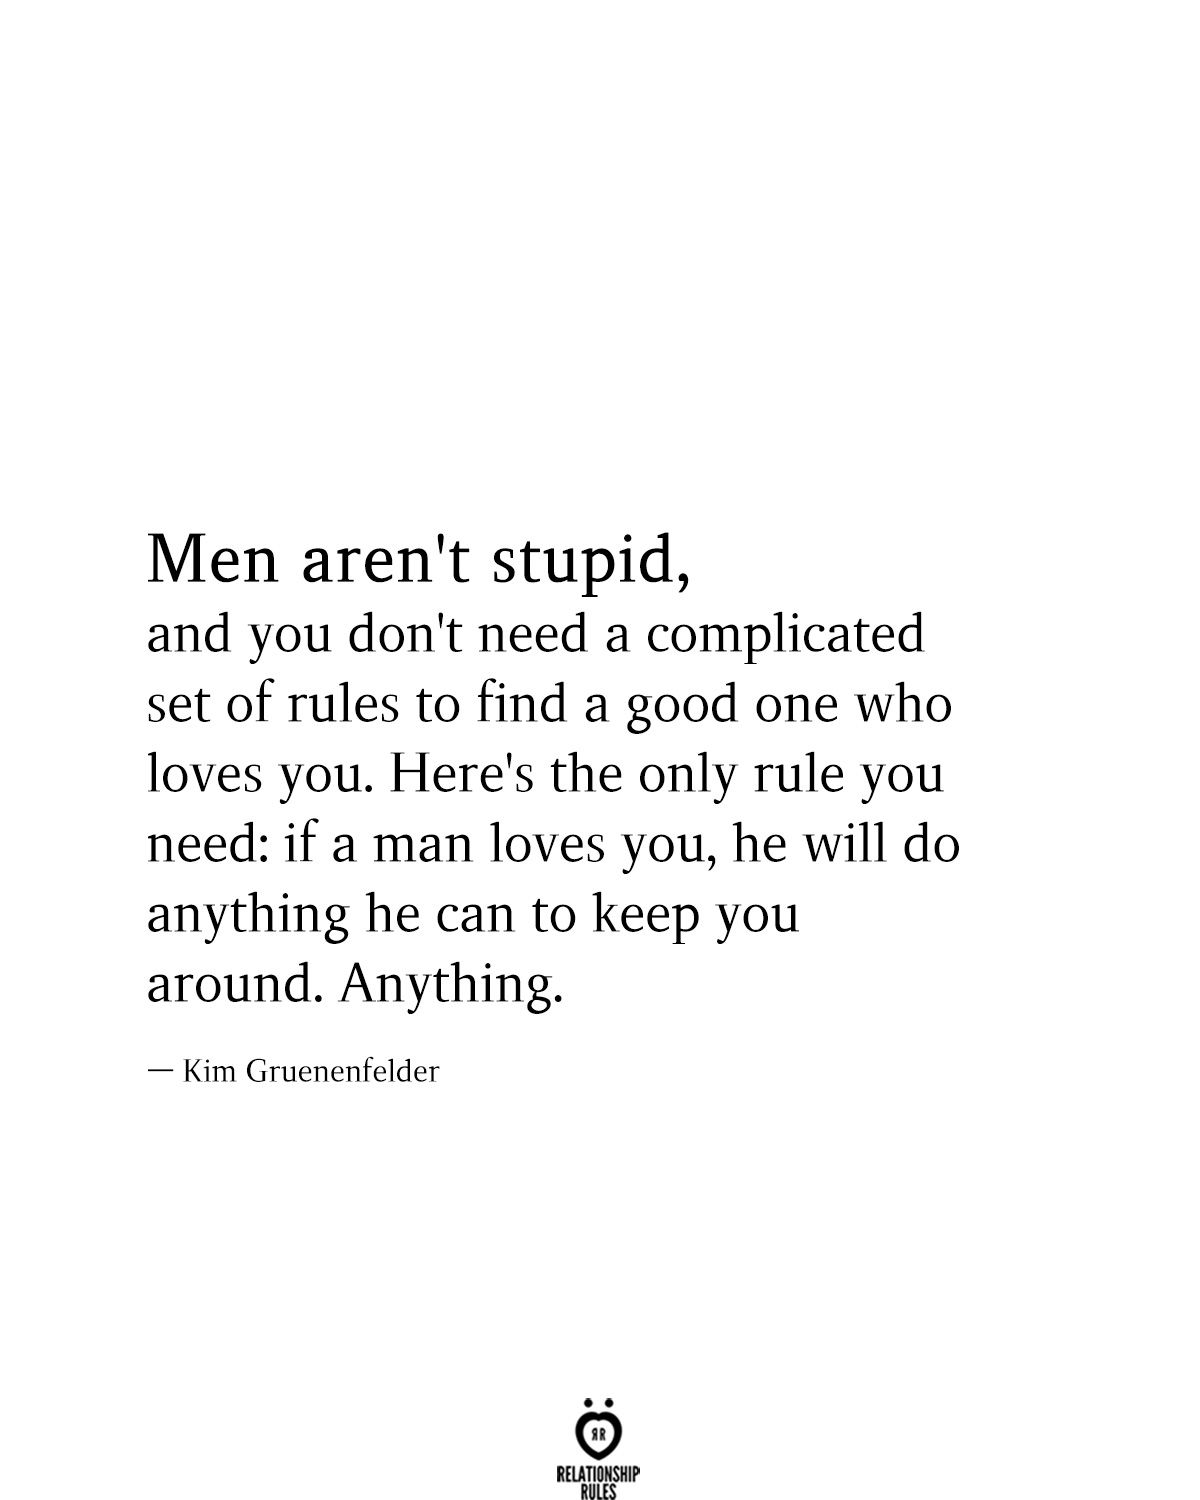 Men Aren't Stupid, And You Don't Need A Complicated Set Of Rules Yo Find A Good One Who Loves You